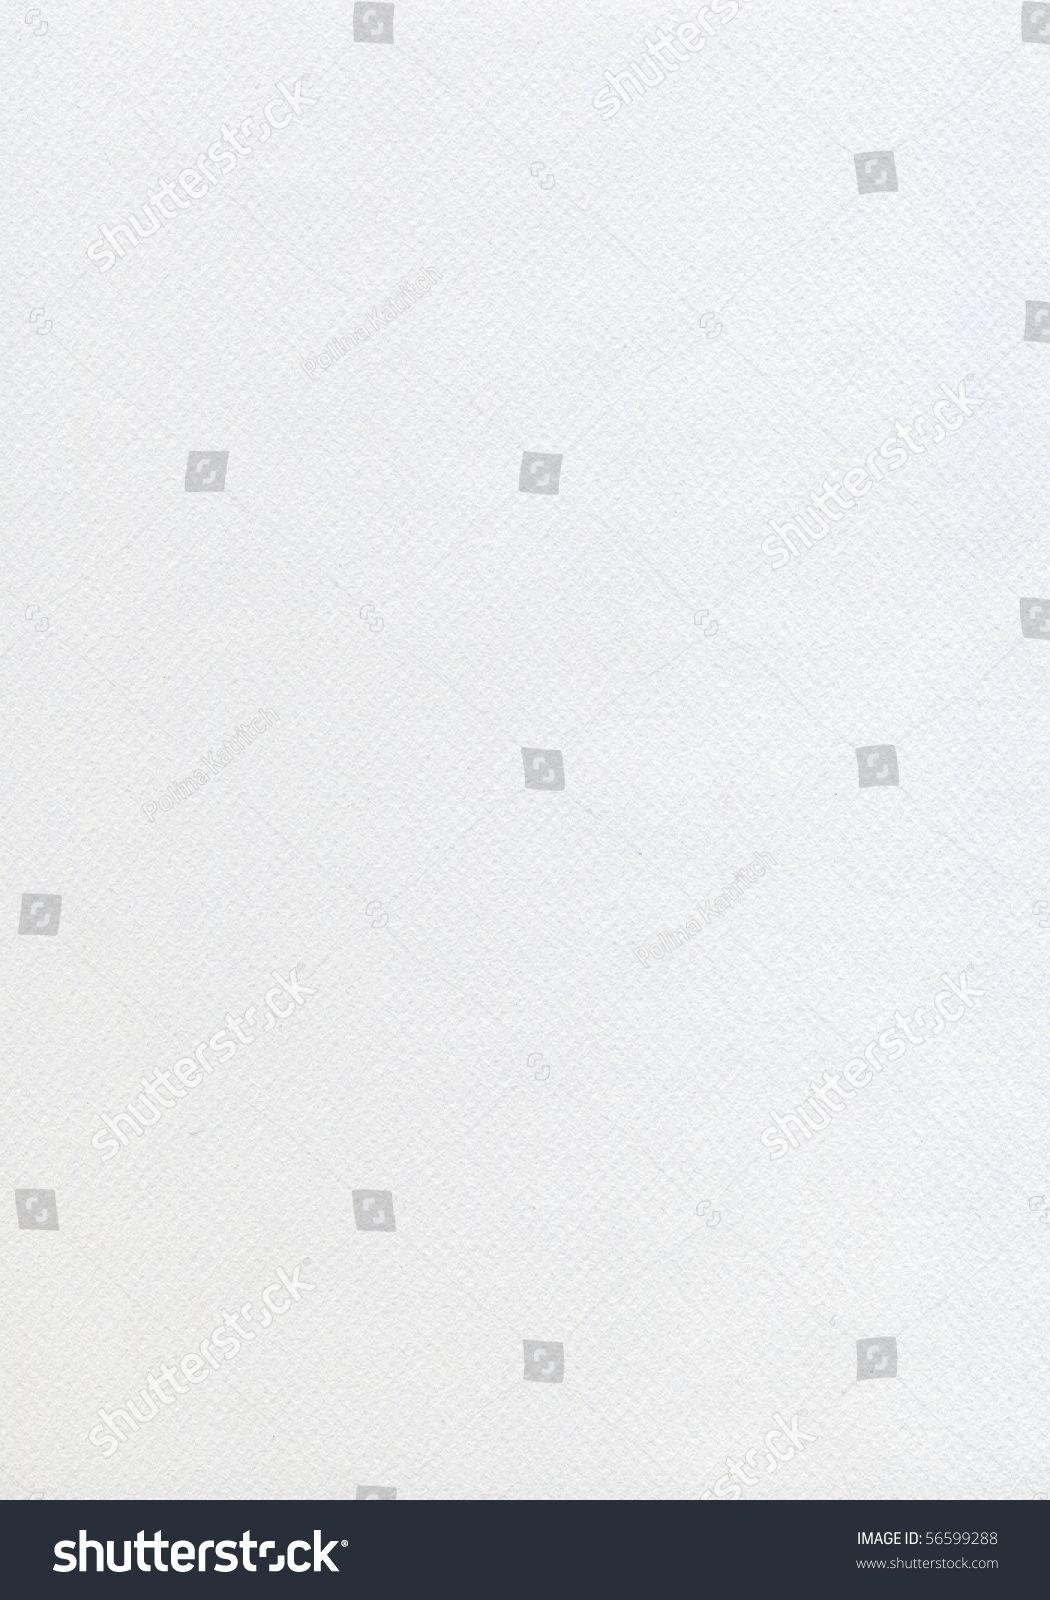 Watercolor Paper Texture Royalty Free Image Illustration